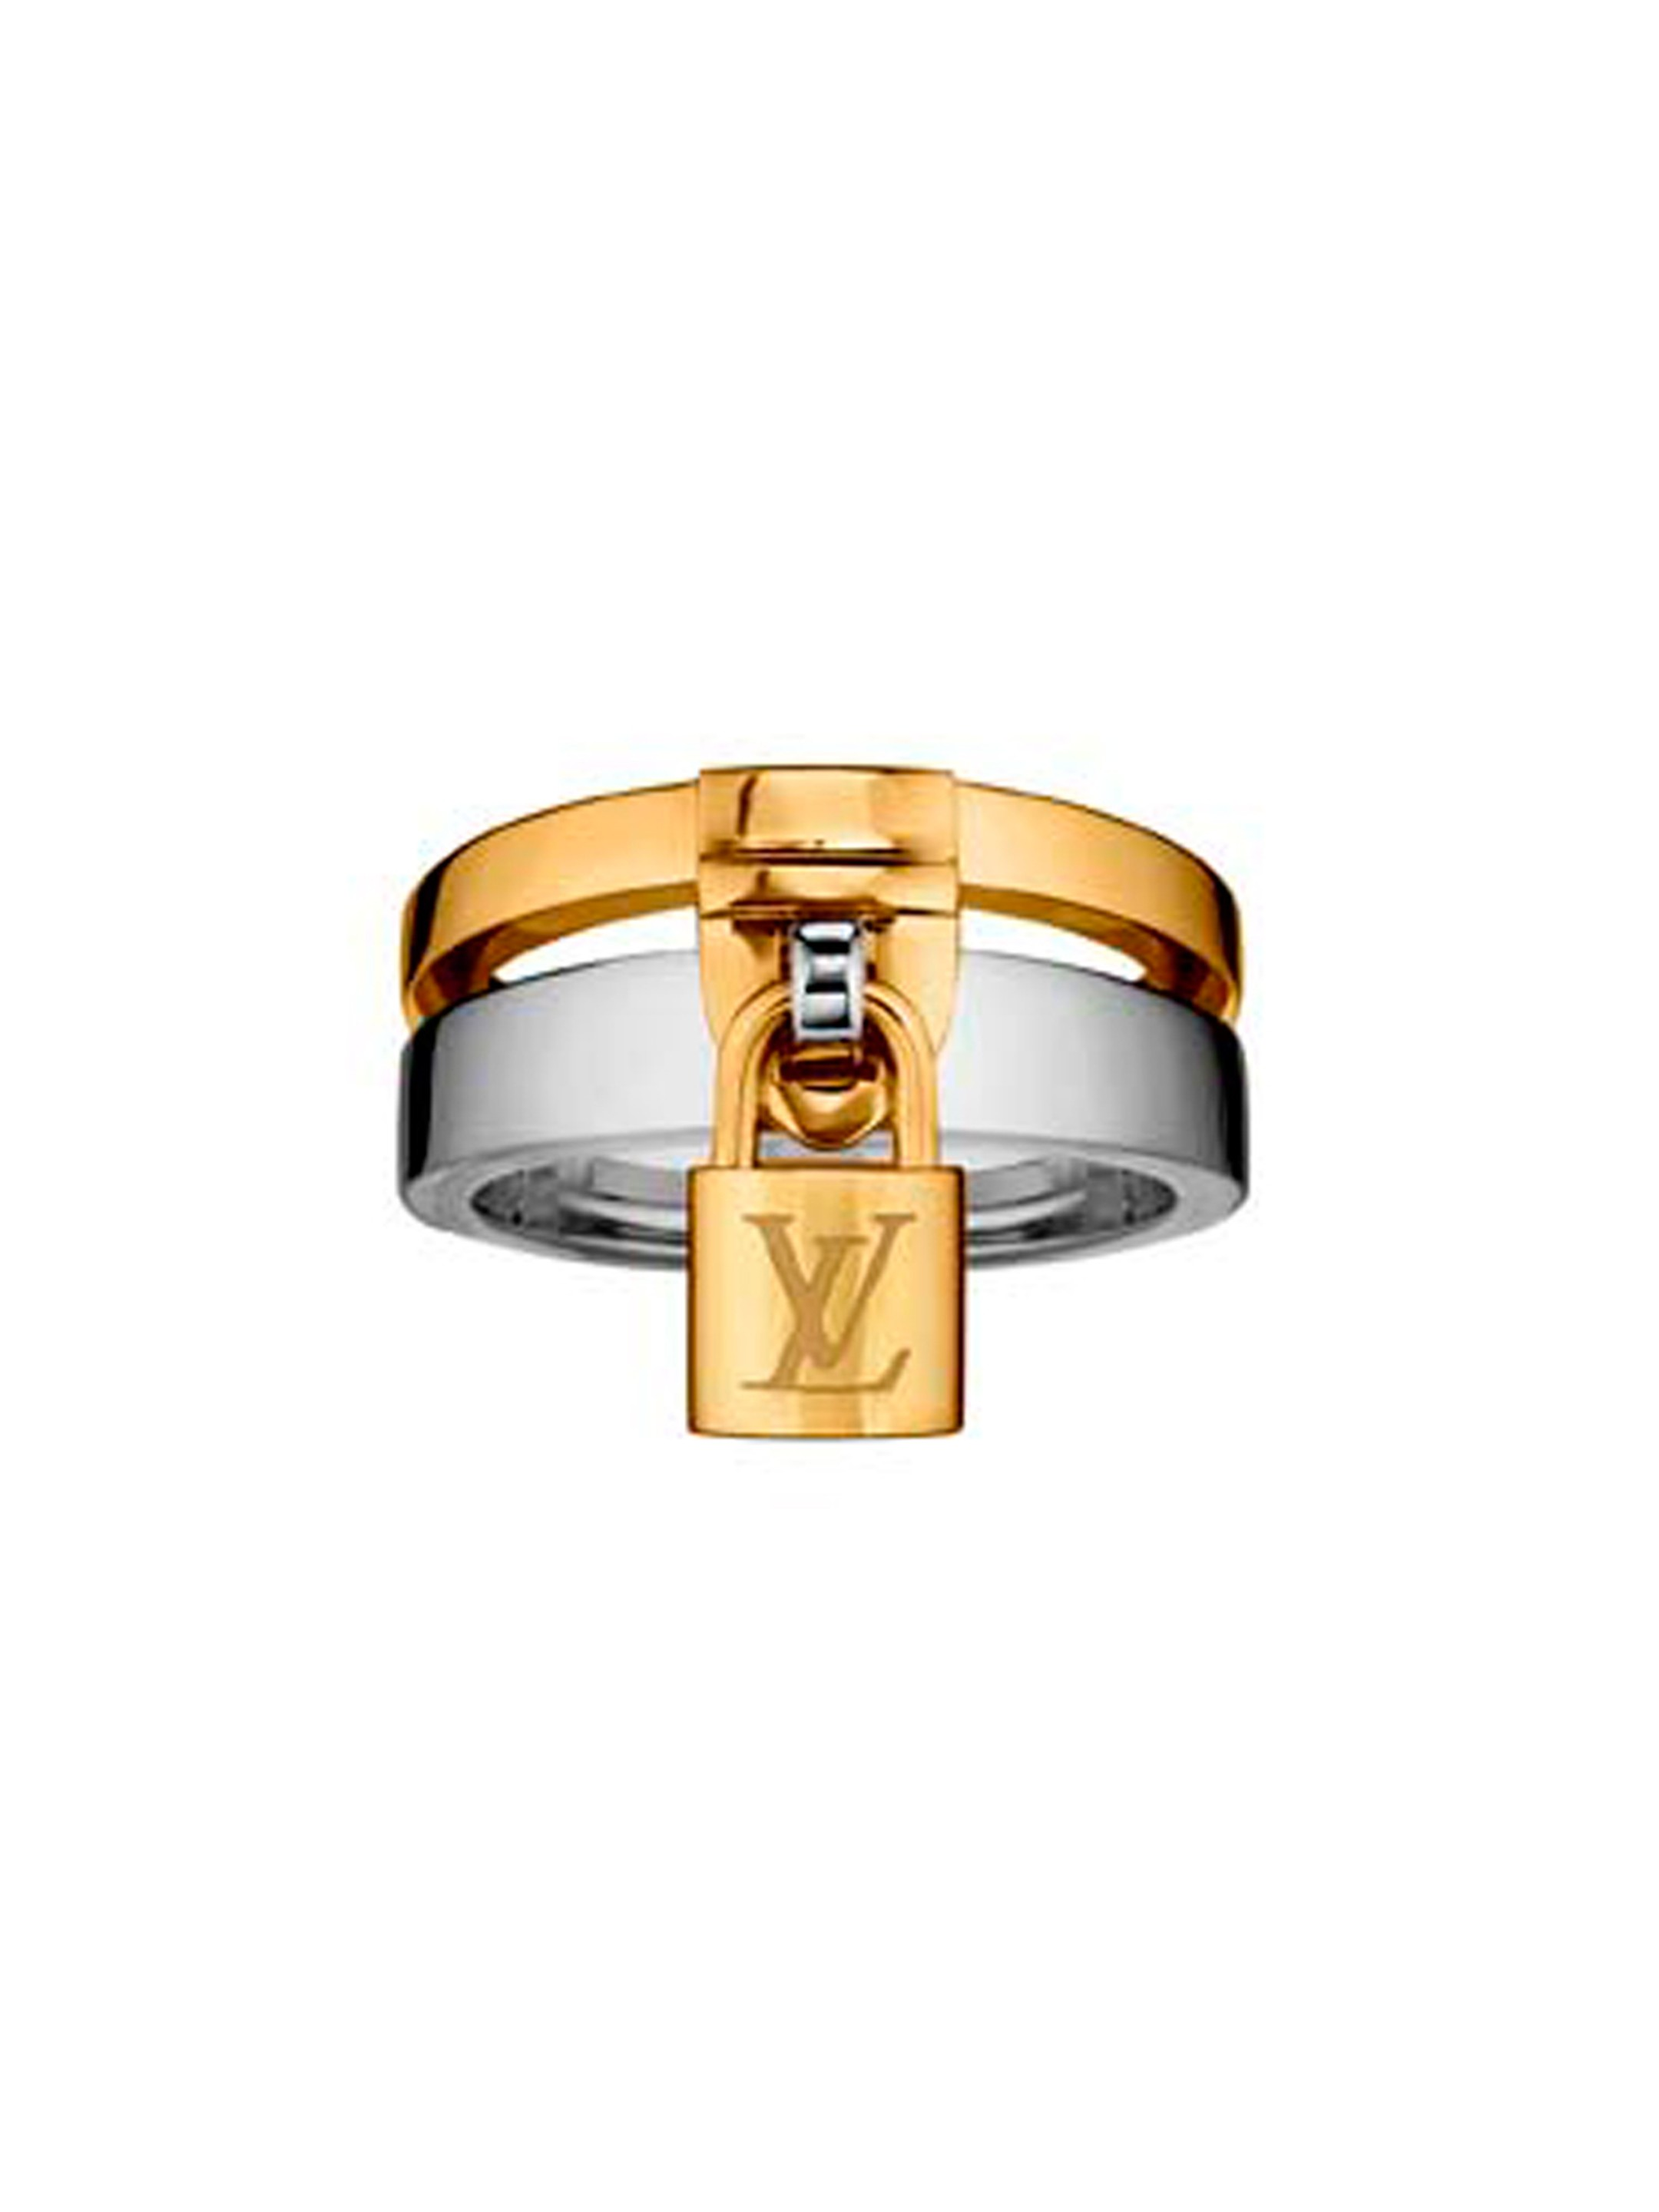 The Louis Vuitton Lockit ring in yellow gold is secured to the white gold ring with a LV embossed padlock, reminiscent of the locks on Louis Vuitton's iconic steamer trunks (£2,620).